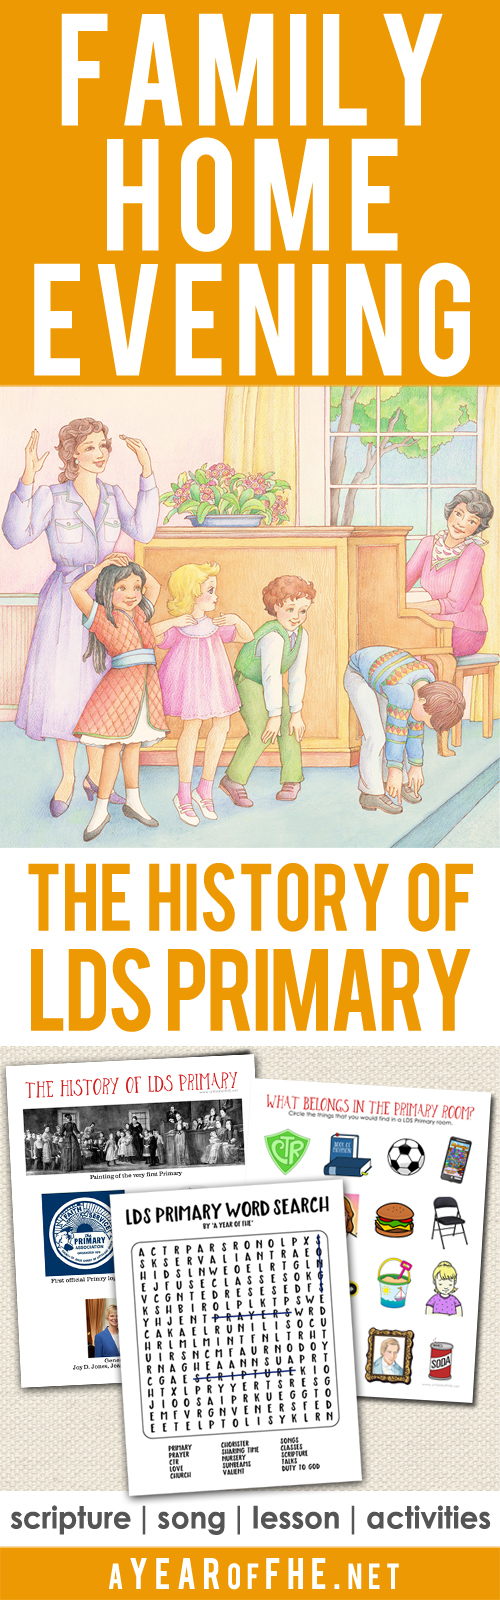 A Year Of FHE: Year 02 / Lesson 07: The History Of LDS Primary